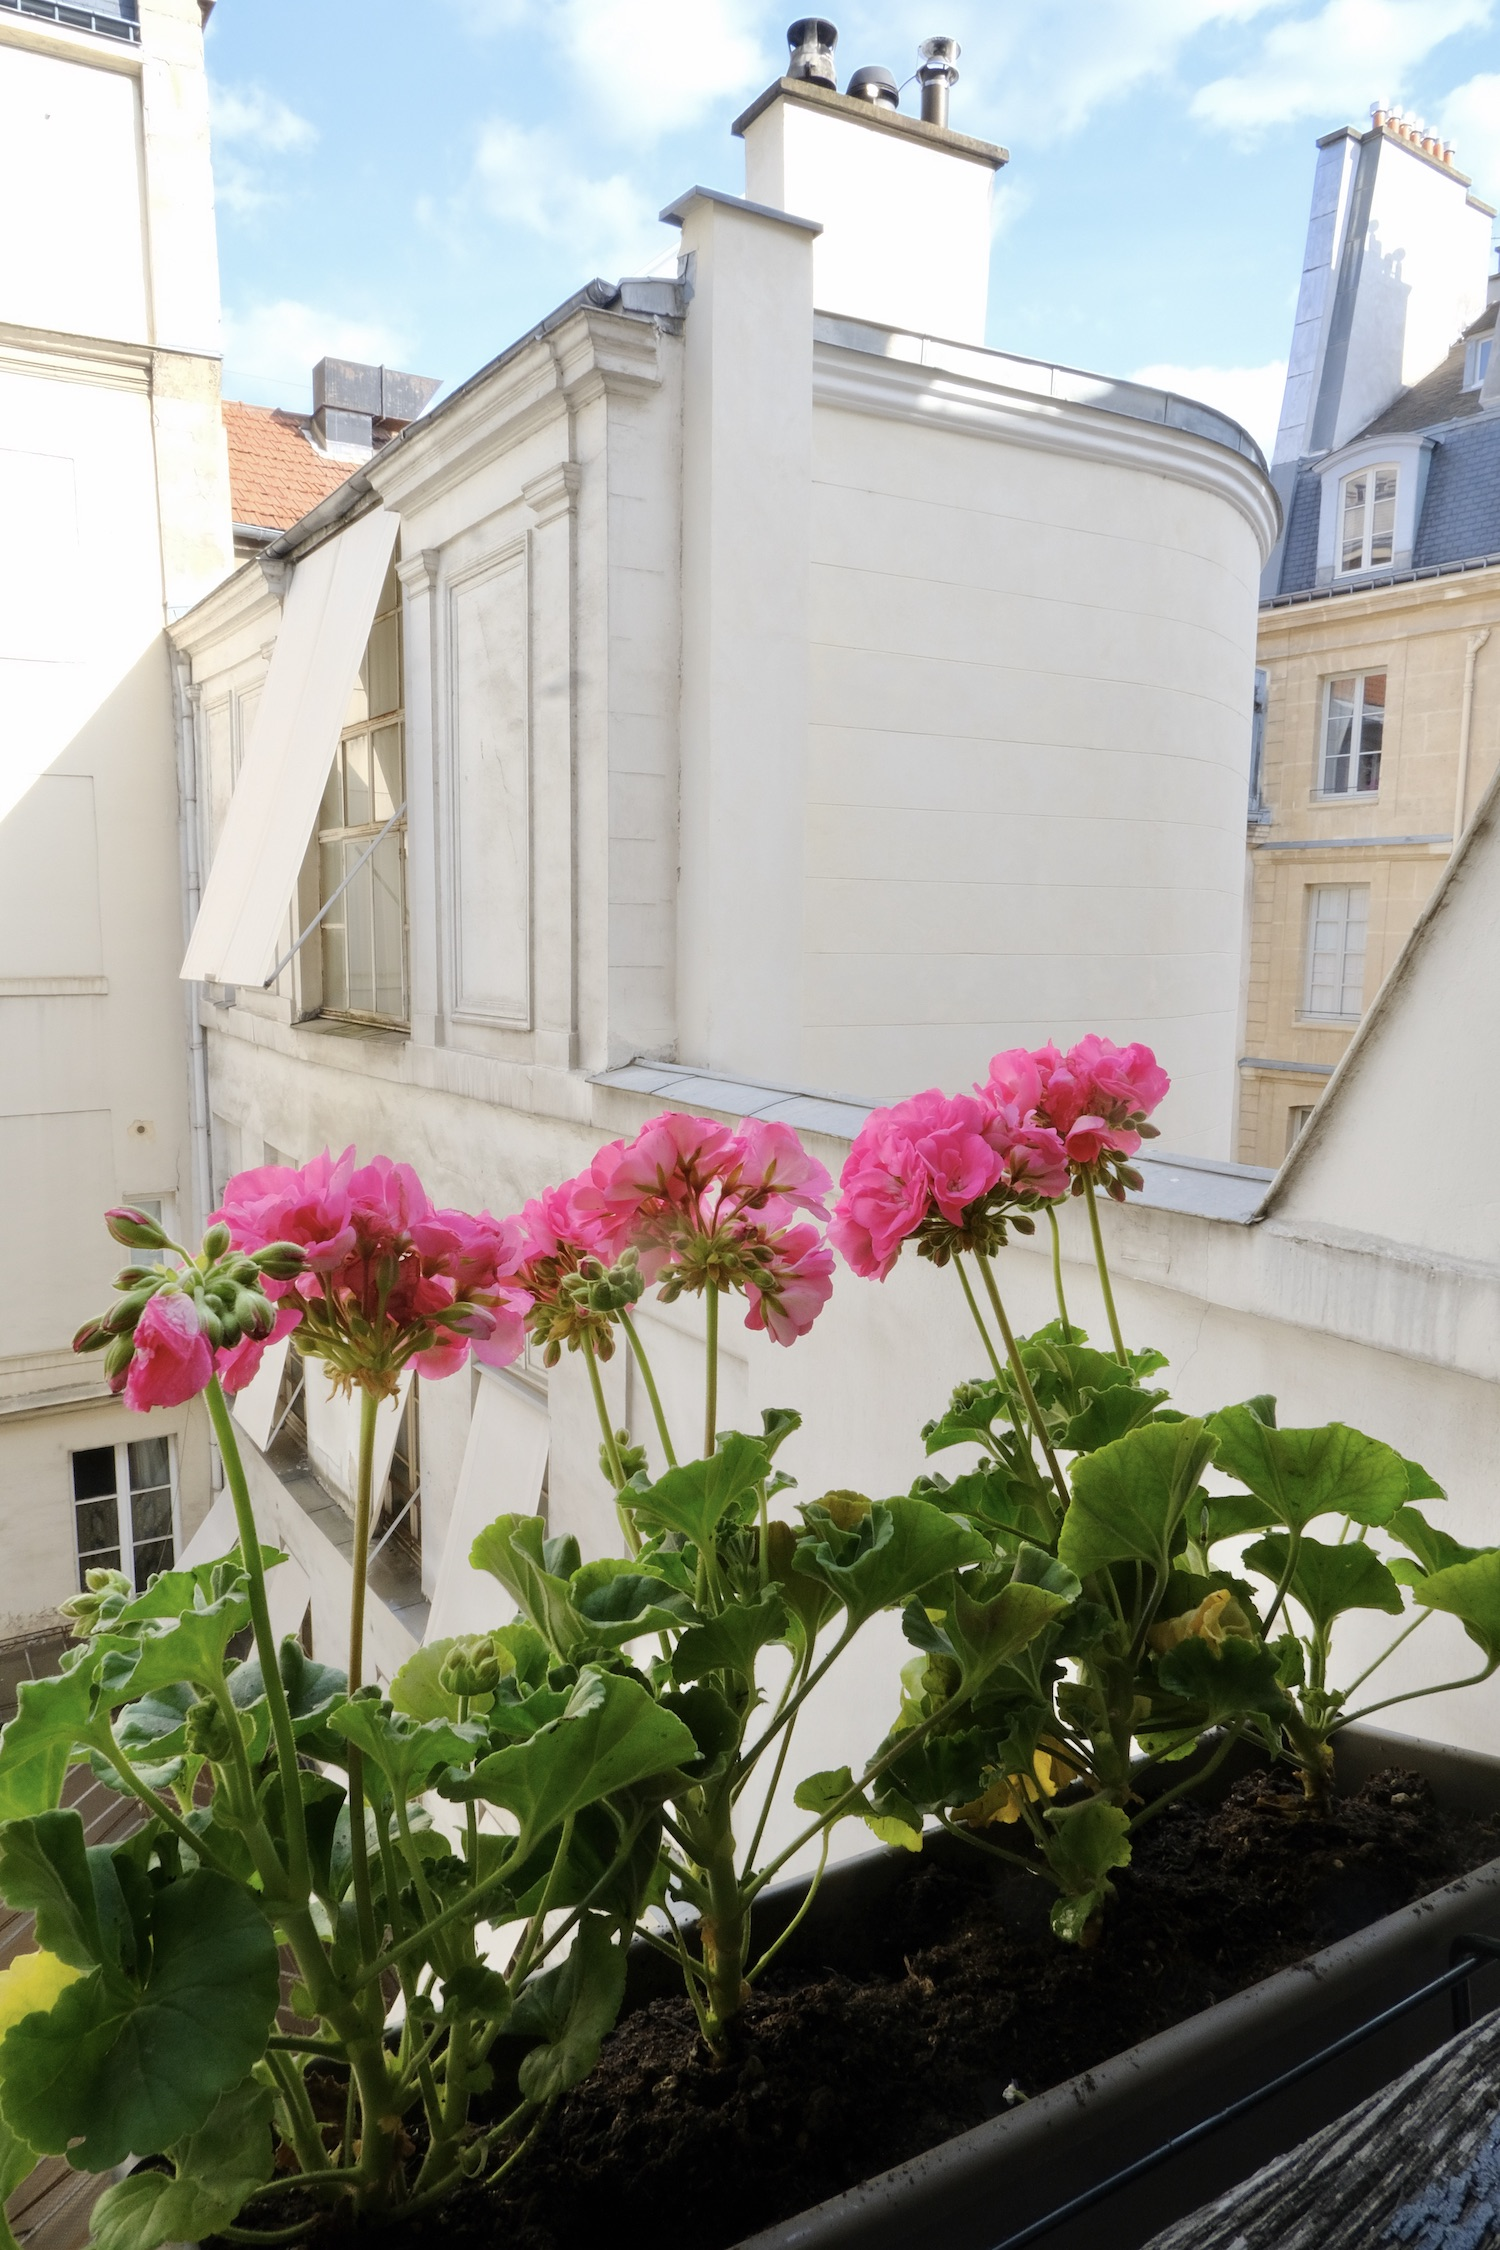 My Parisian Window Boxes with Pink Geraniums